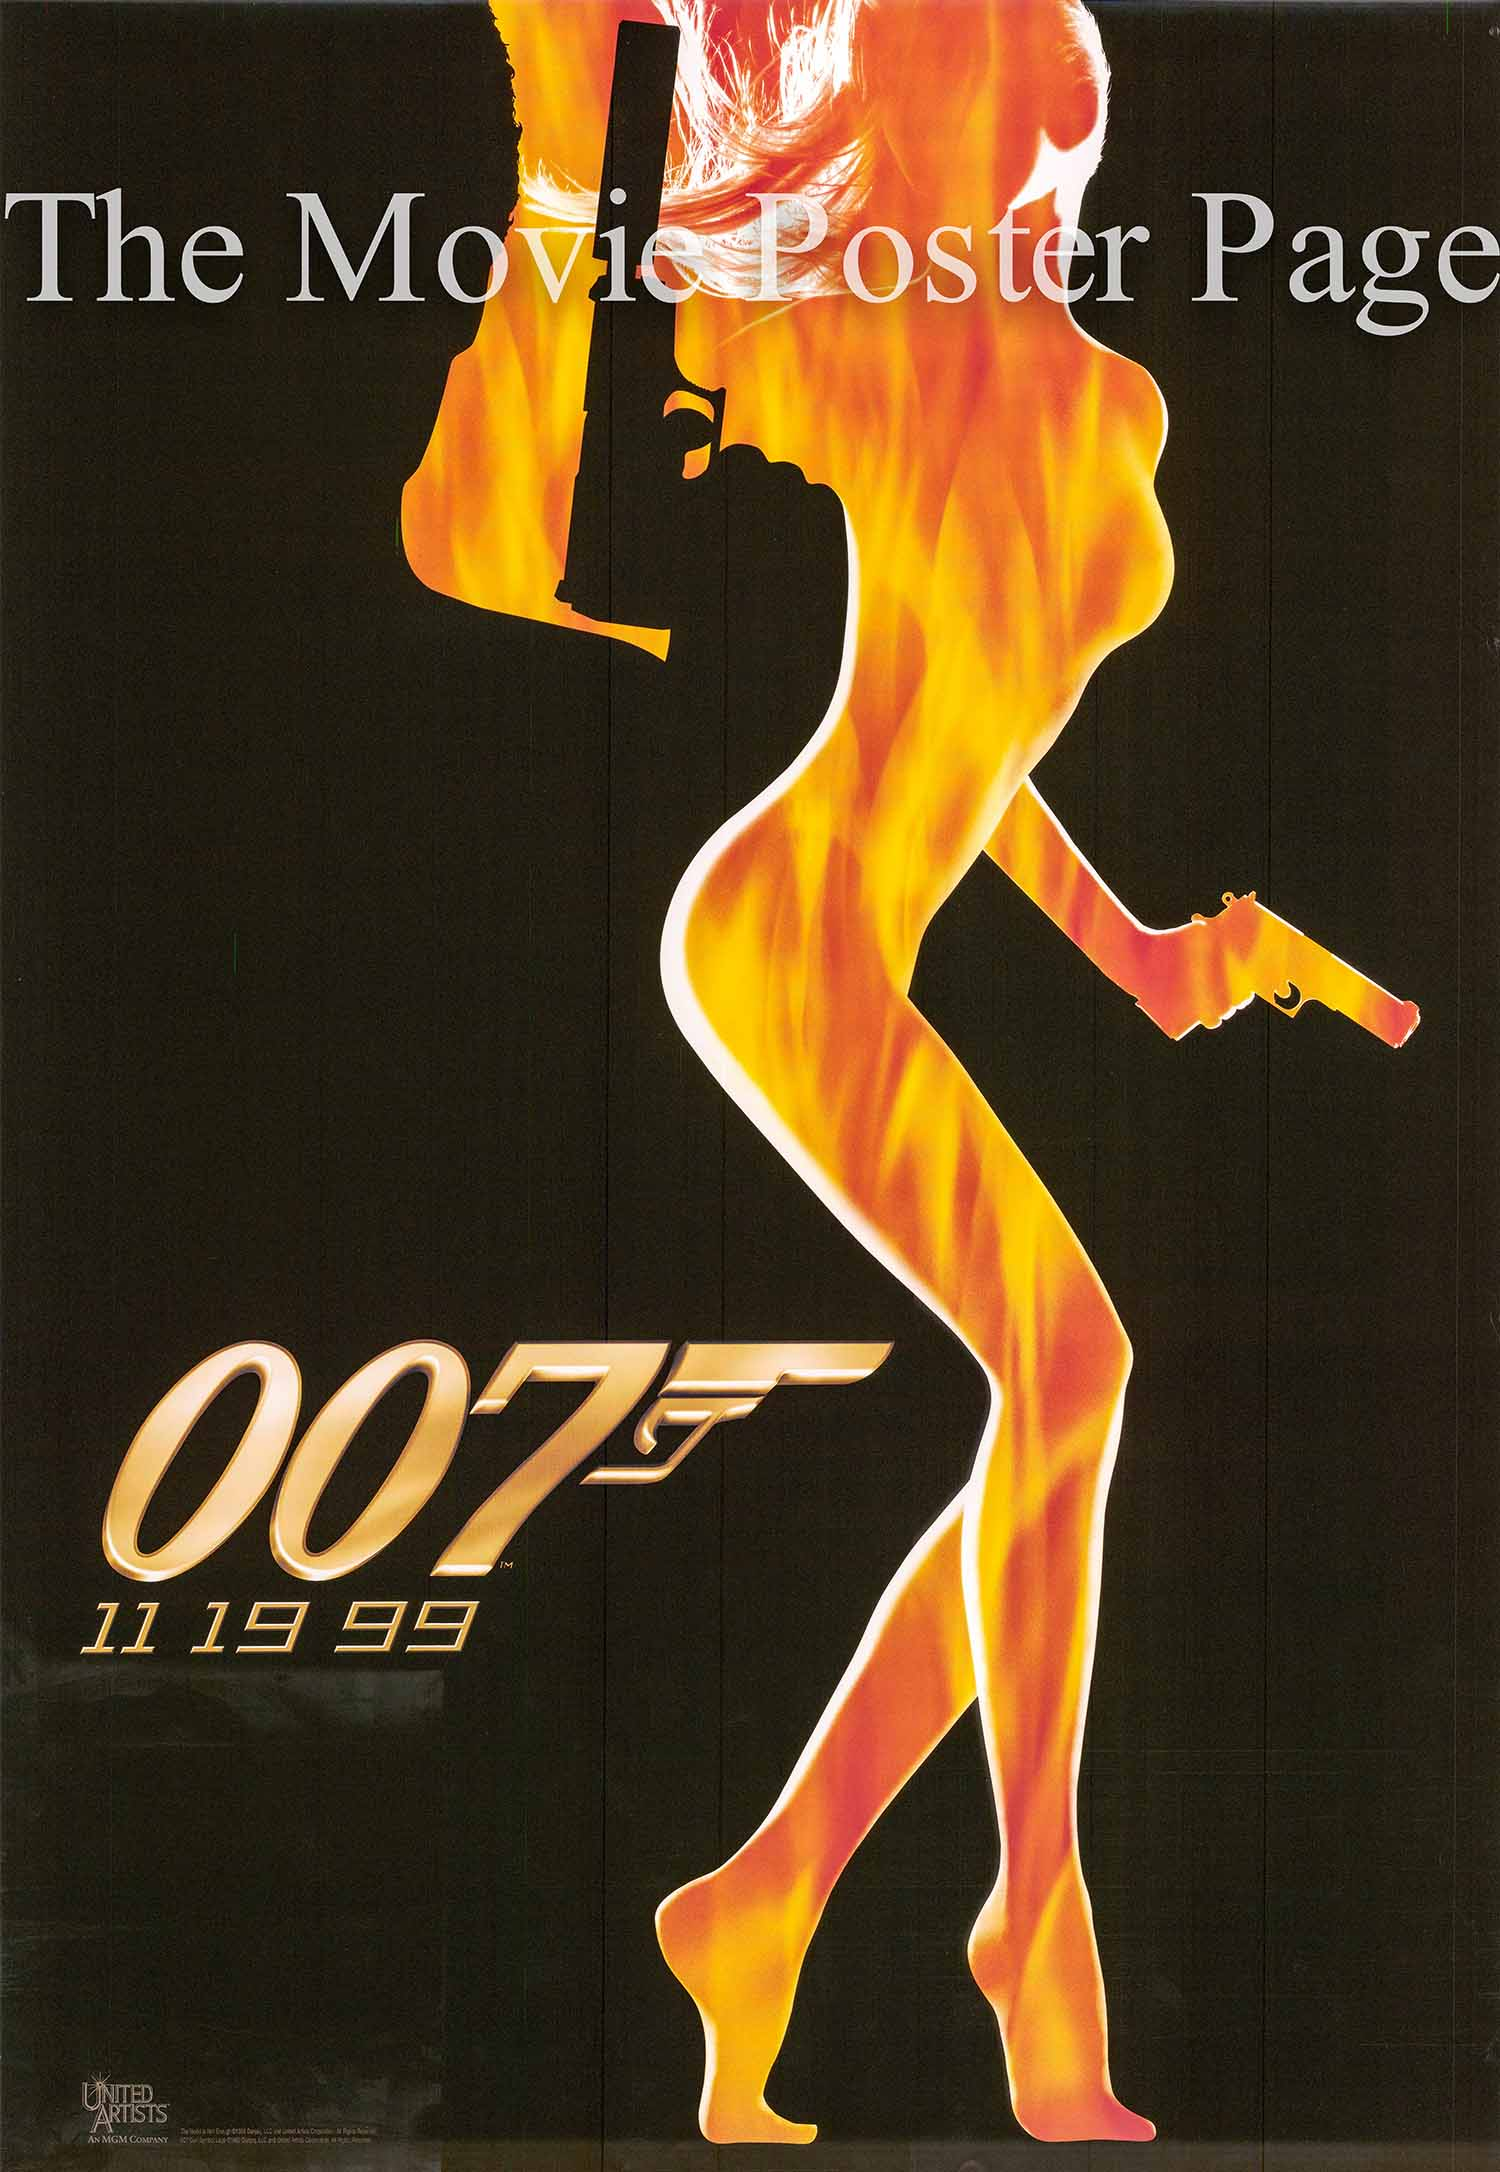 This is the US one-sheet advance poster for the 1999 James Bond film <i>The World Is Not Enough</i>, starring Pierce Brosnan as James Bond, with the famous famous flame lady image.